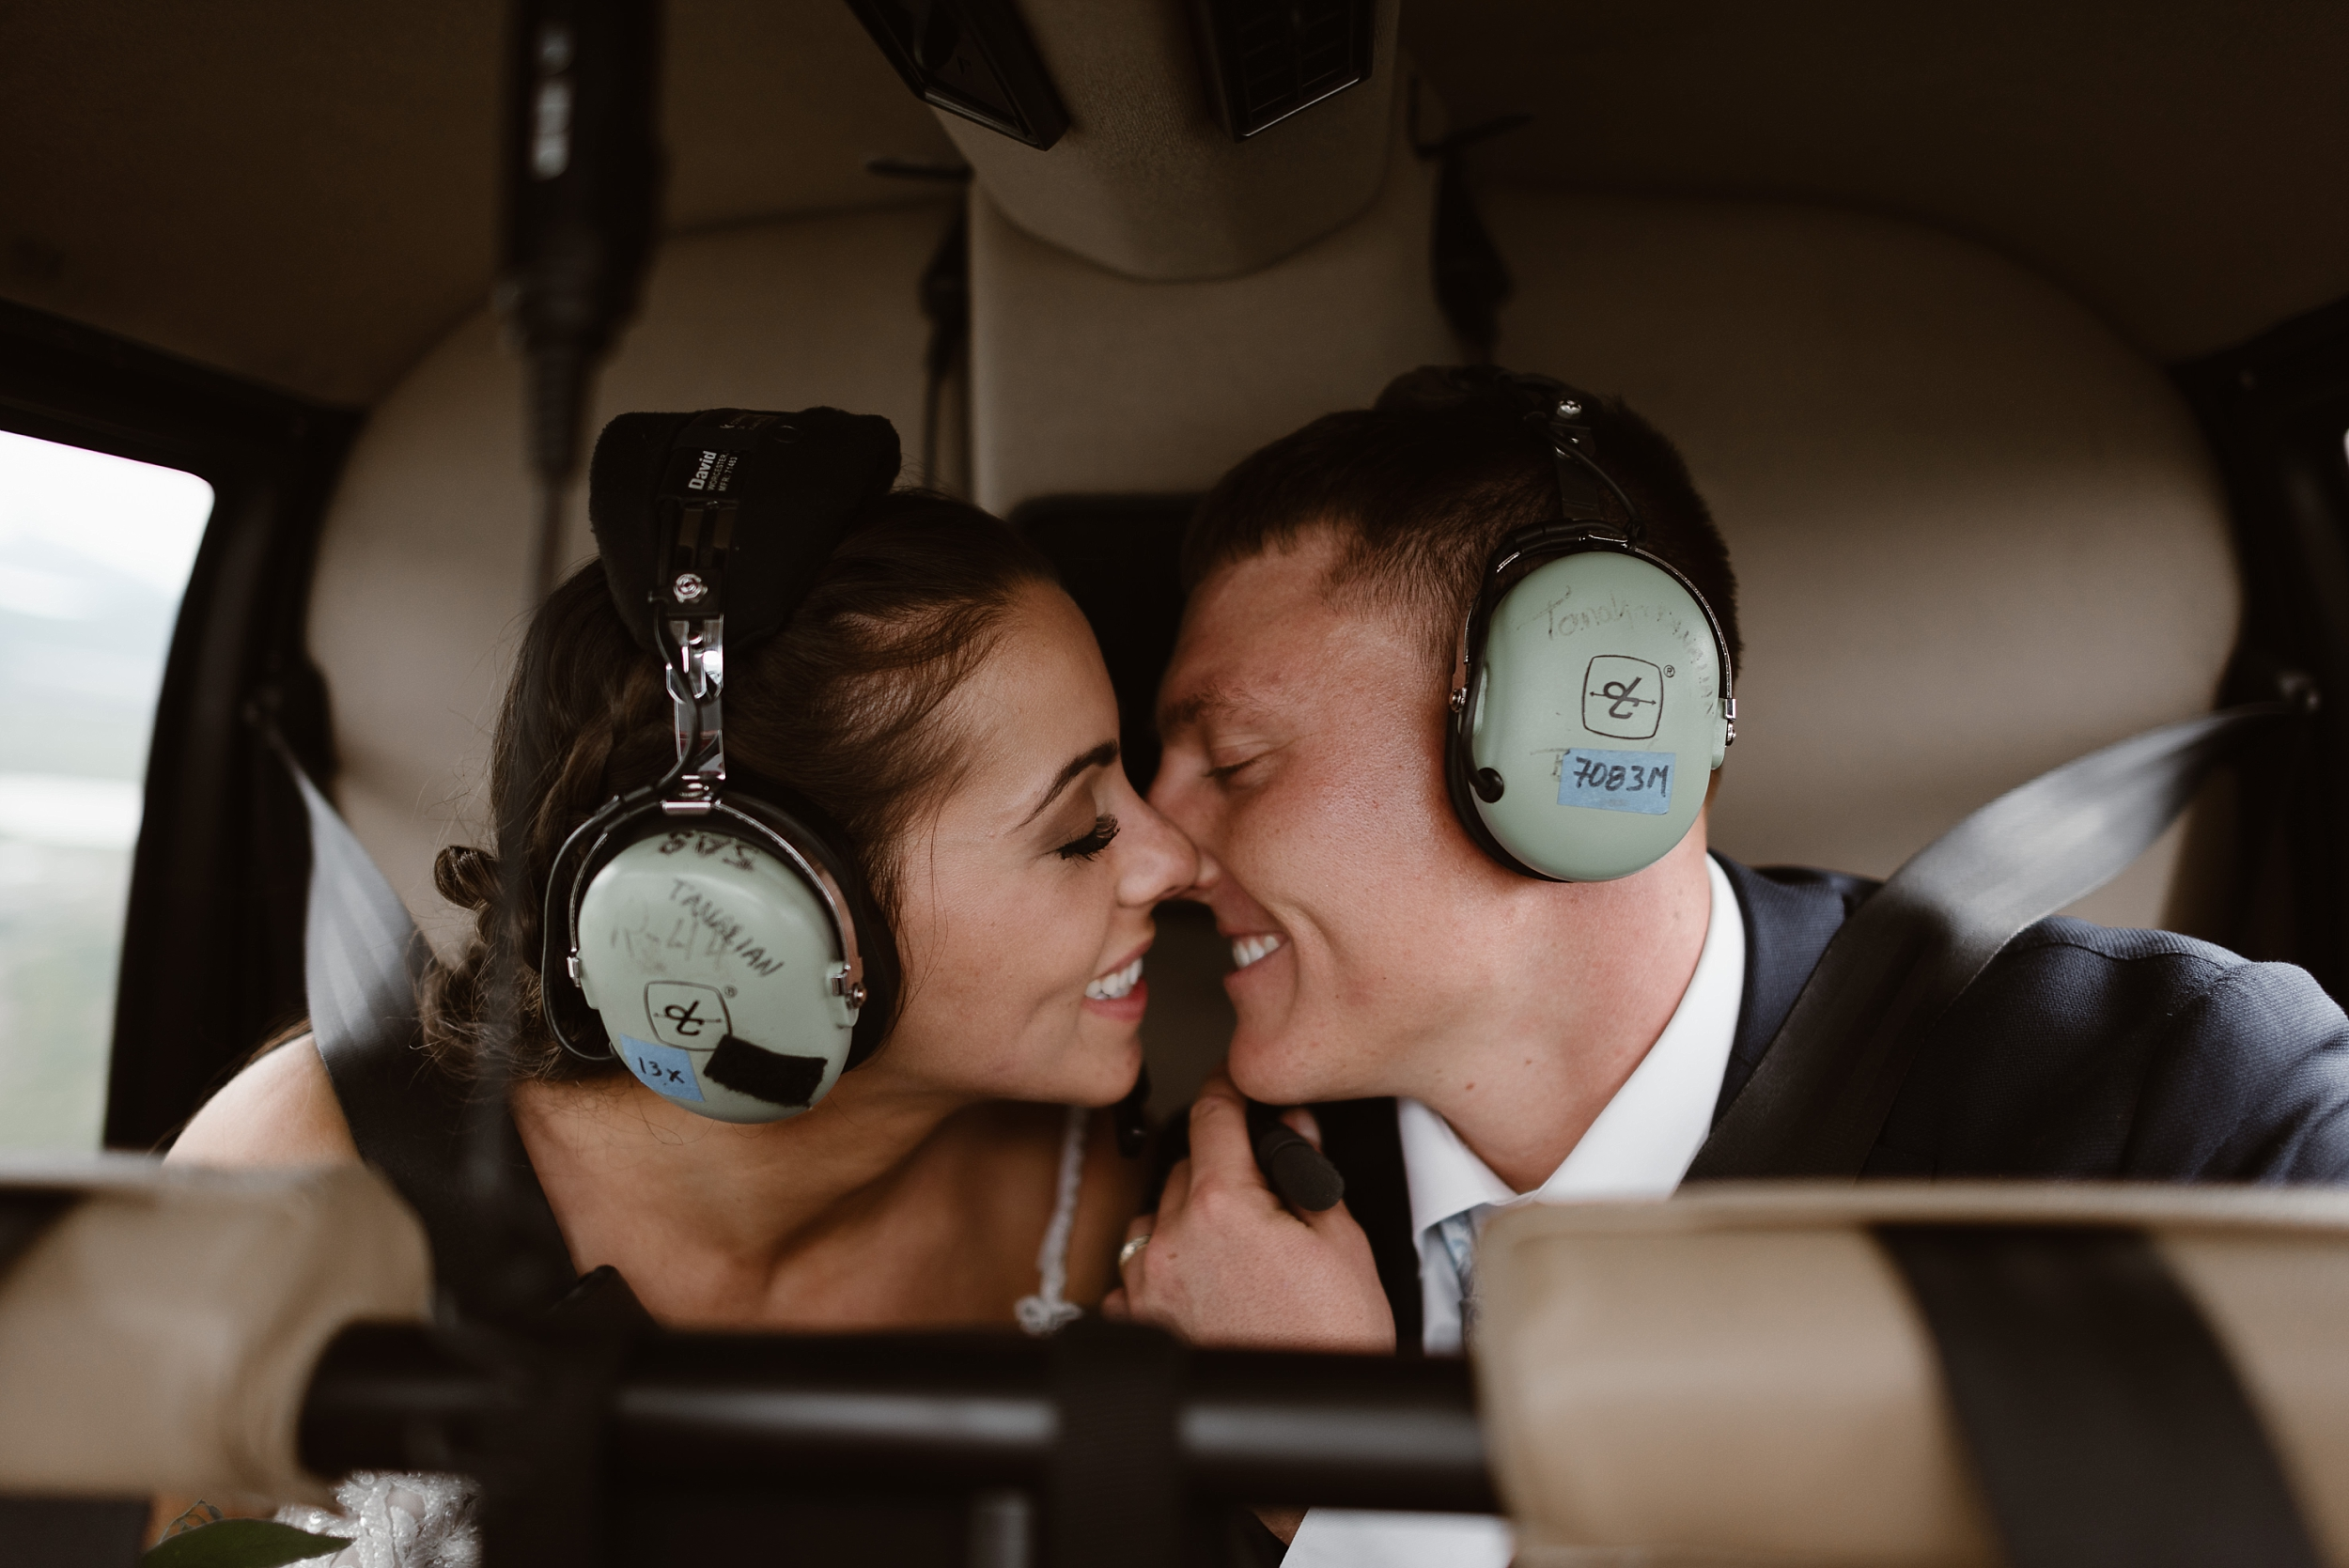 In the back of the helicopter, Jordyn and Connor, the bride and room, pull each other in close until they're almost kissing. With their eyes shut, they lean in as the helicopter flies them to their next destination during their helicopter elopement.